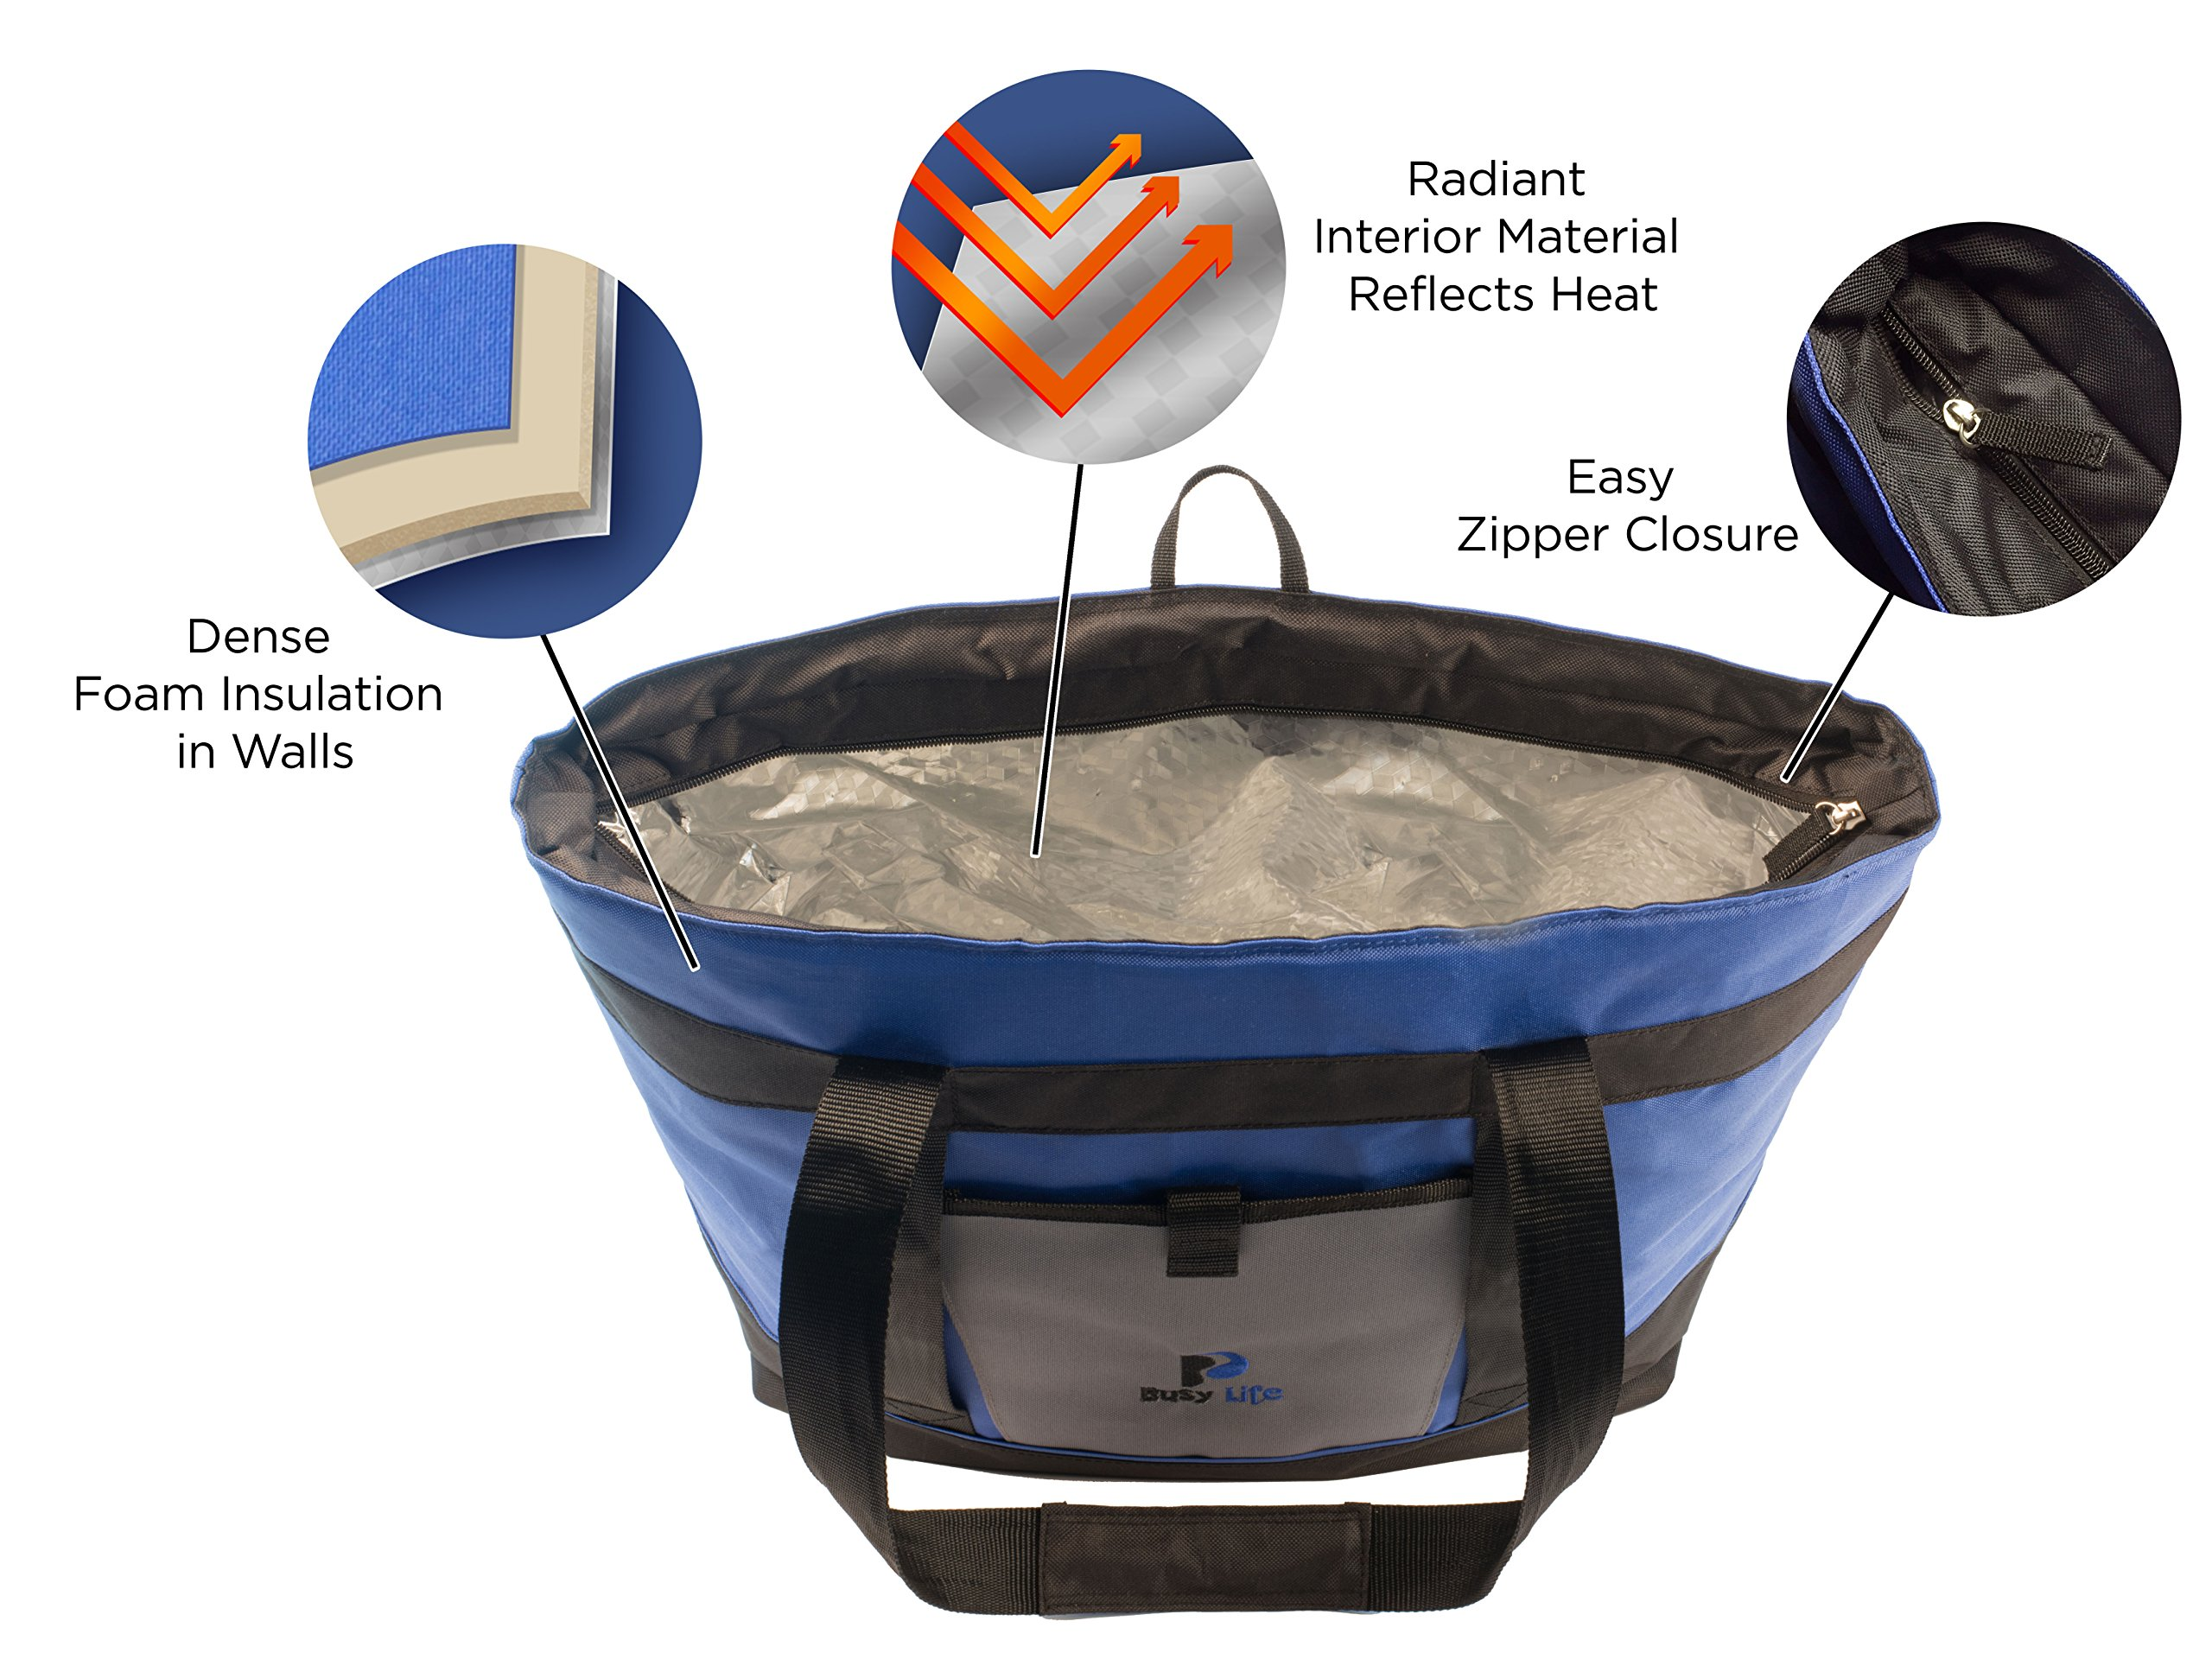 Insulated Cooler Bag Gift Pack. Busy Life Insulated Grocery Tote Perfect for Hot and Cold Food. Large 10 Gallon Capacity - Never Bring Home Melted Ice Cream Again. (4 Units) by Busy Life (Image #4)